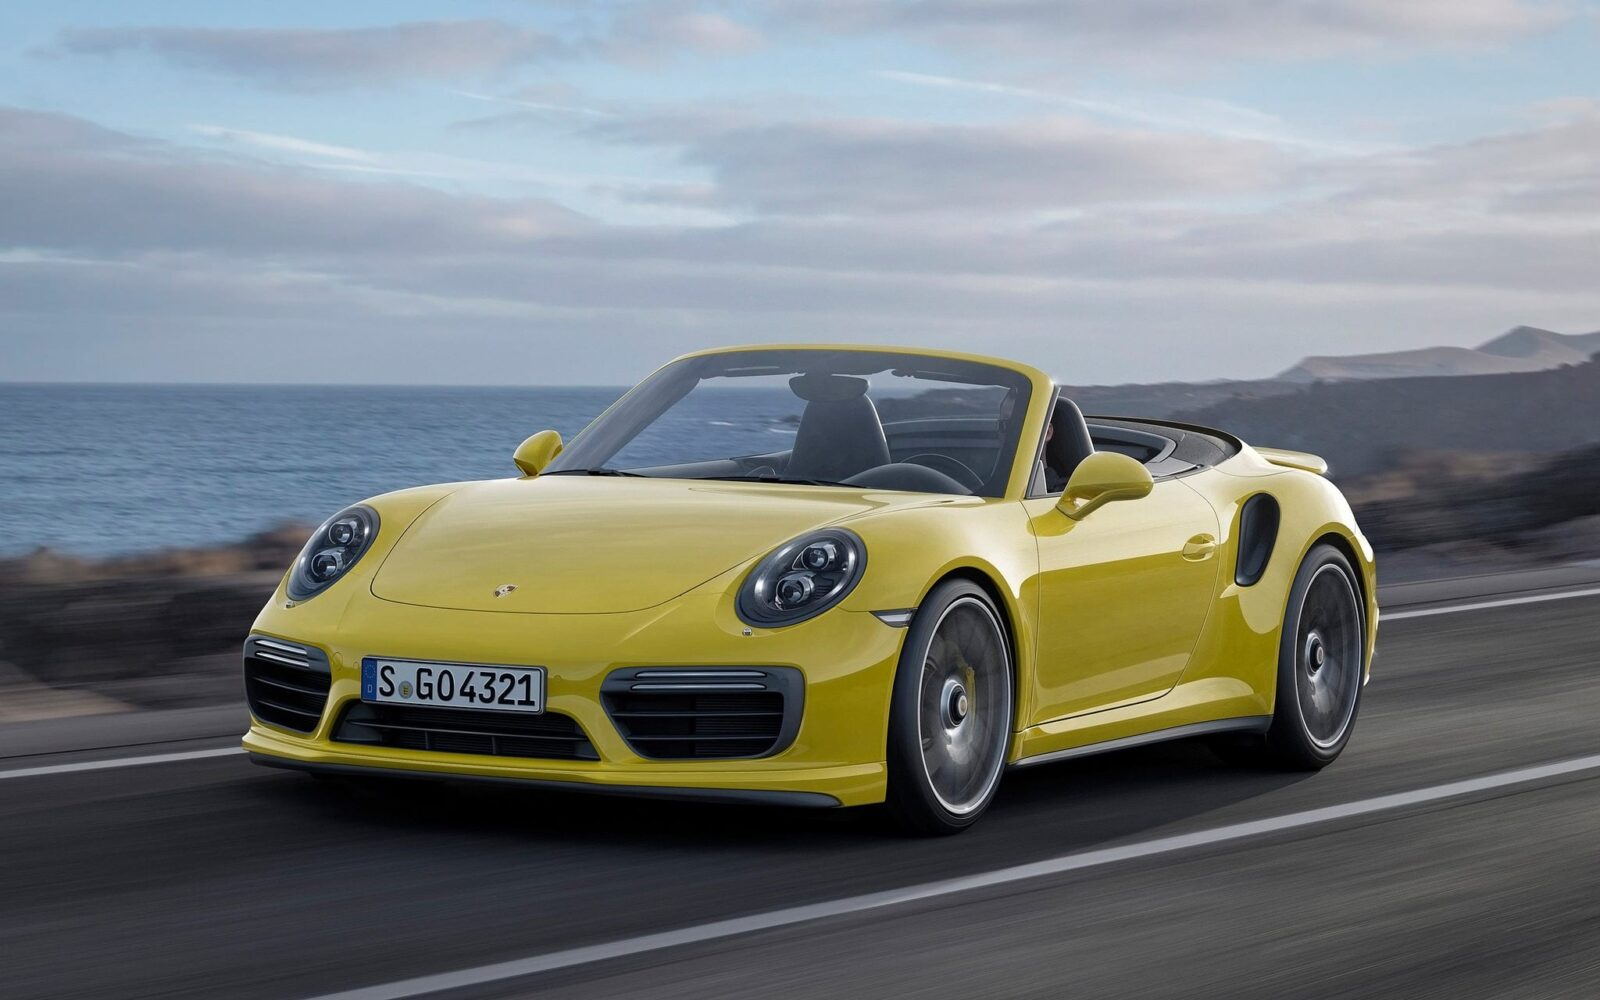 2016 Porsche 911 Turbo S Cabriolet Wallpapers Hd